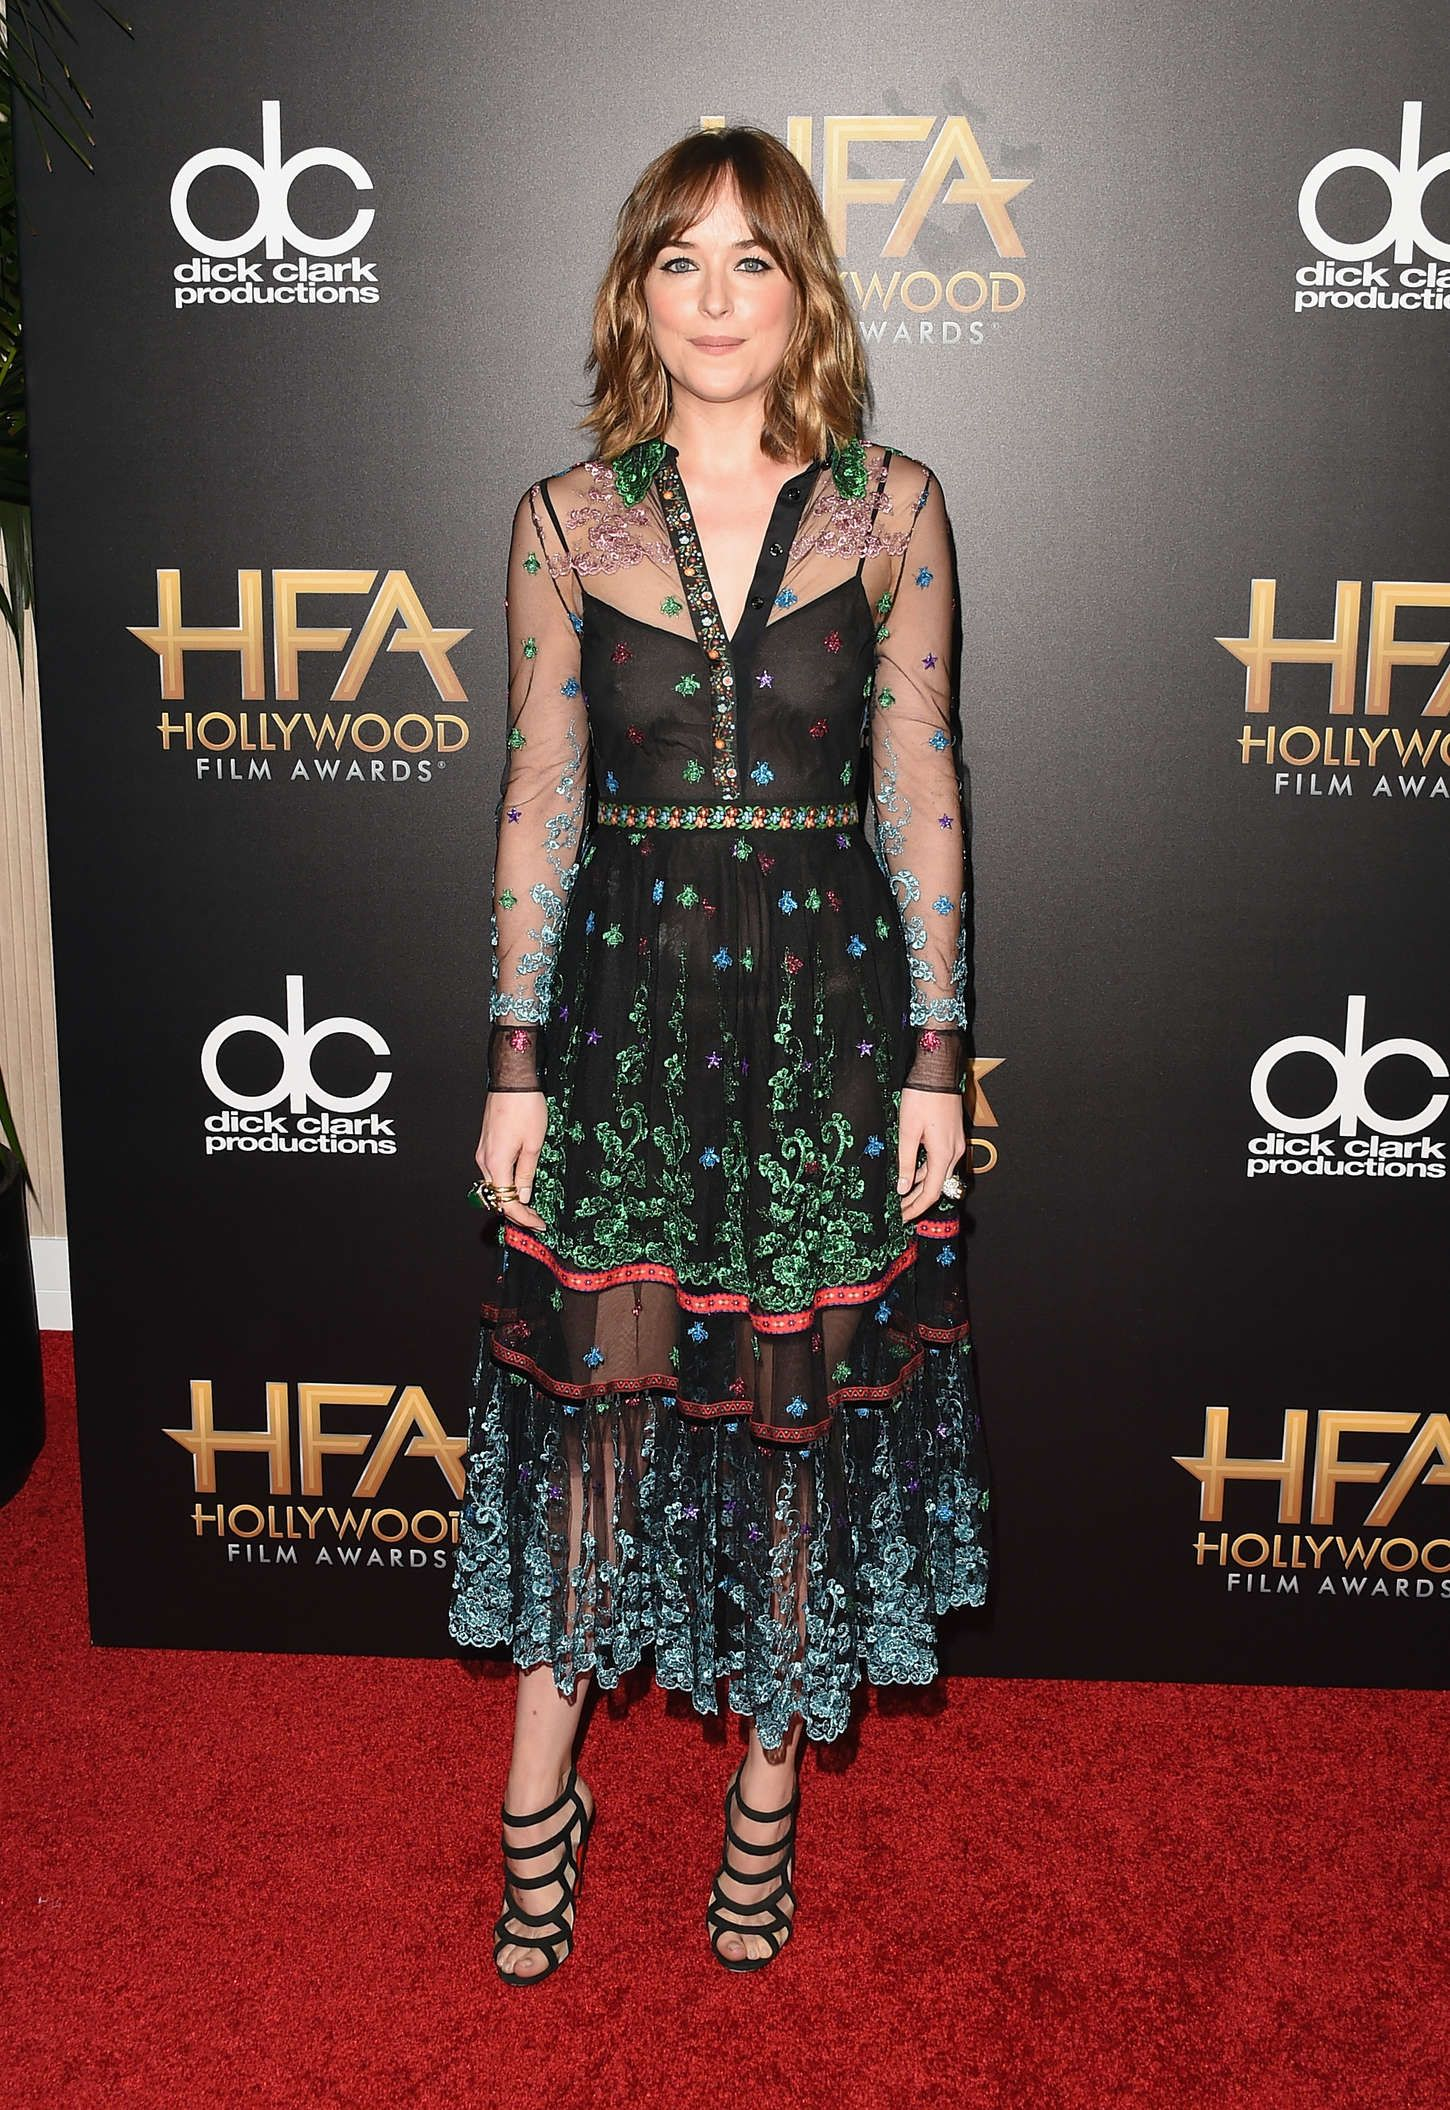 Hollywood Film Awards 2015: See Who Won ( Wore) What photo